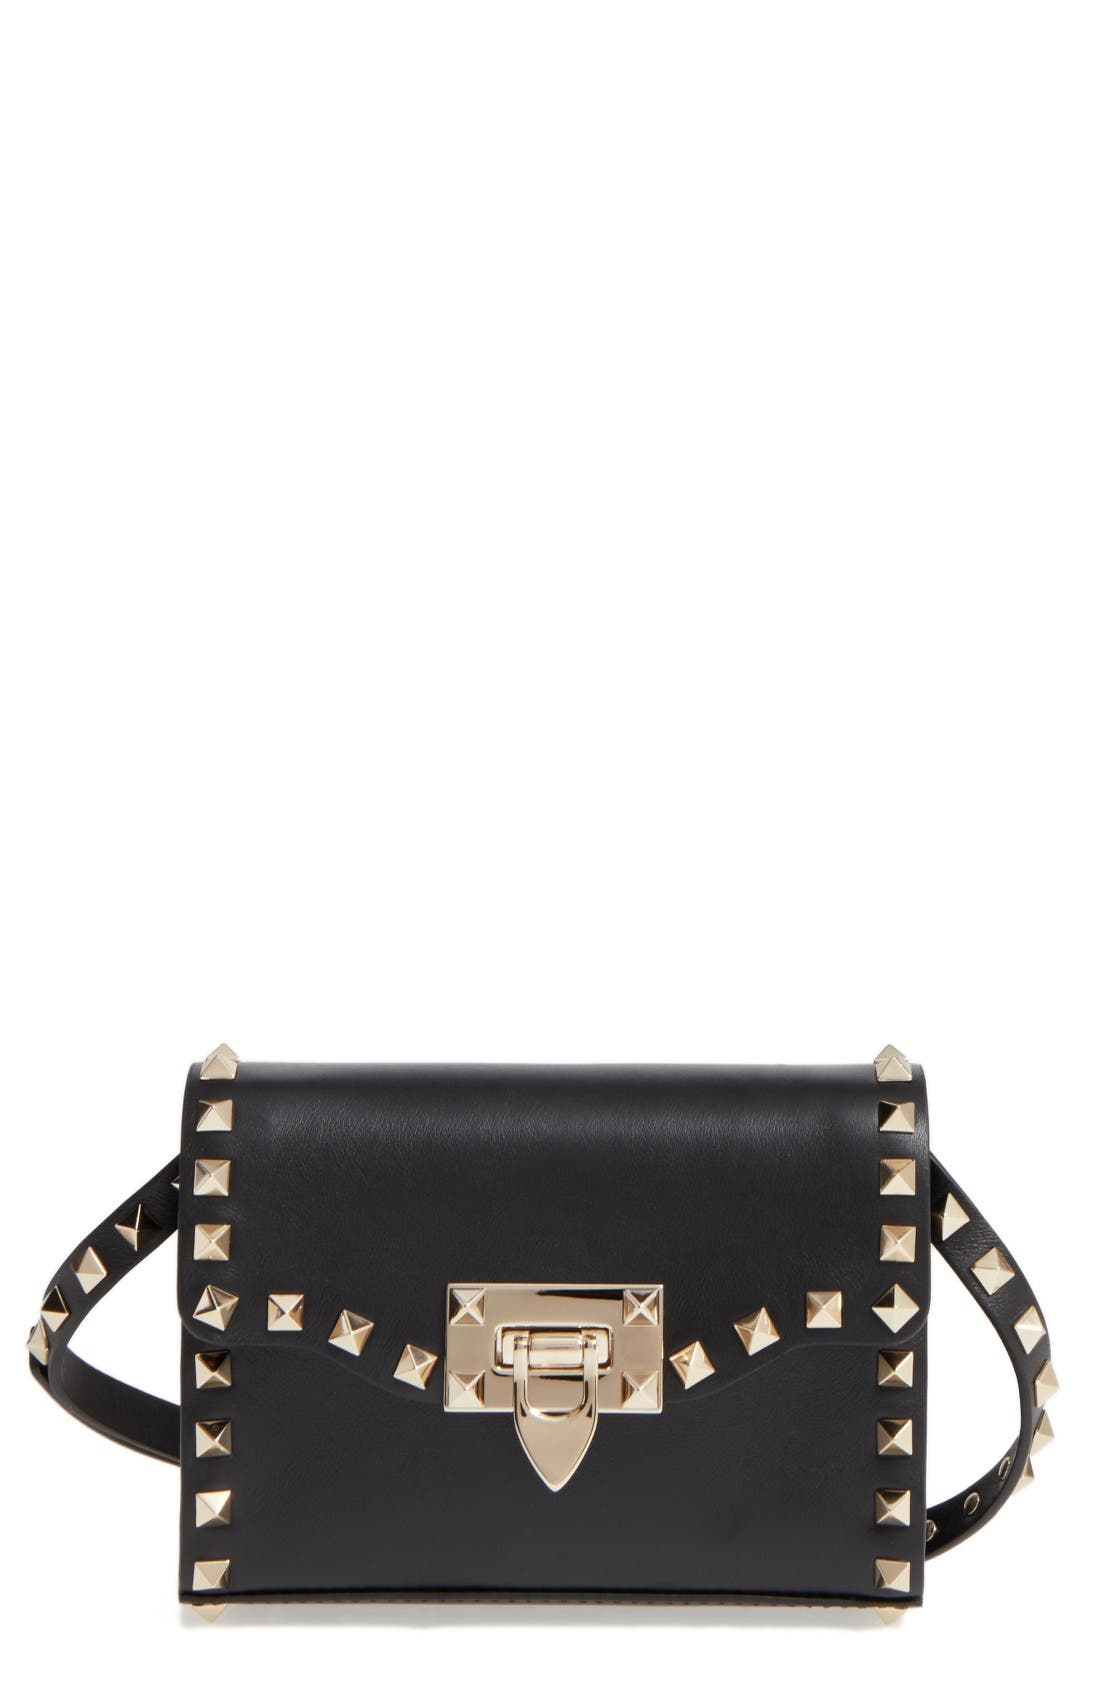 Alternate Image 1 Selected - VALENTINO GARAVANI Small Rockstud Leather Shoulder Bag